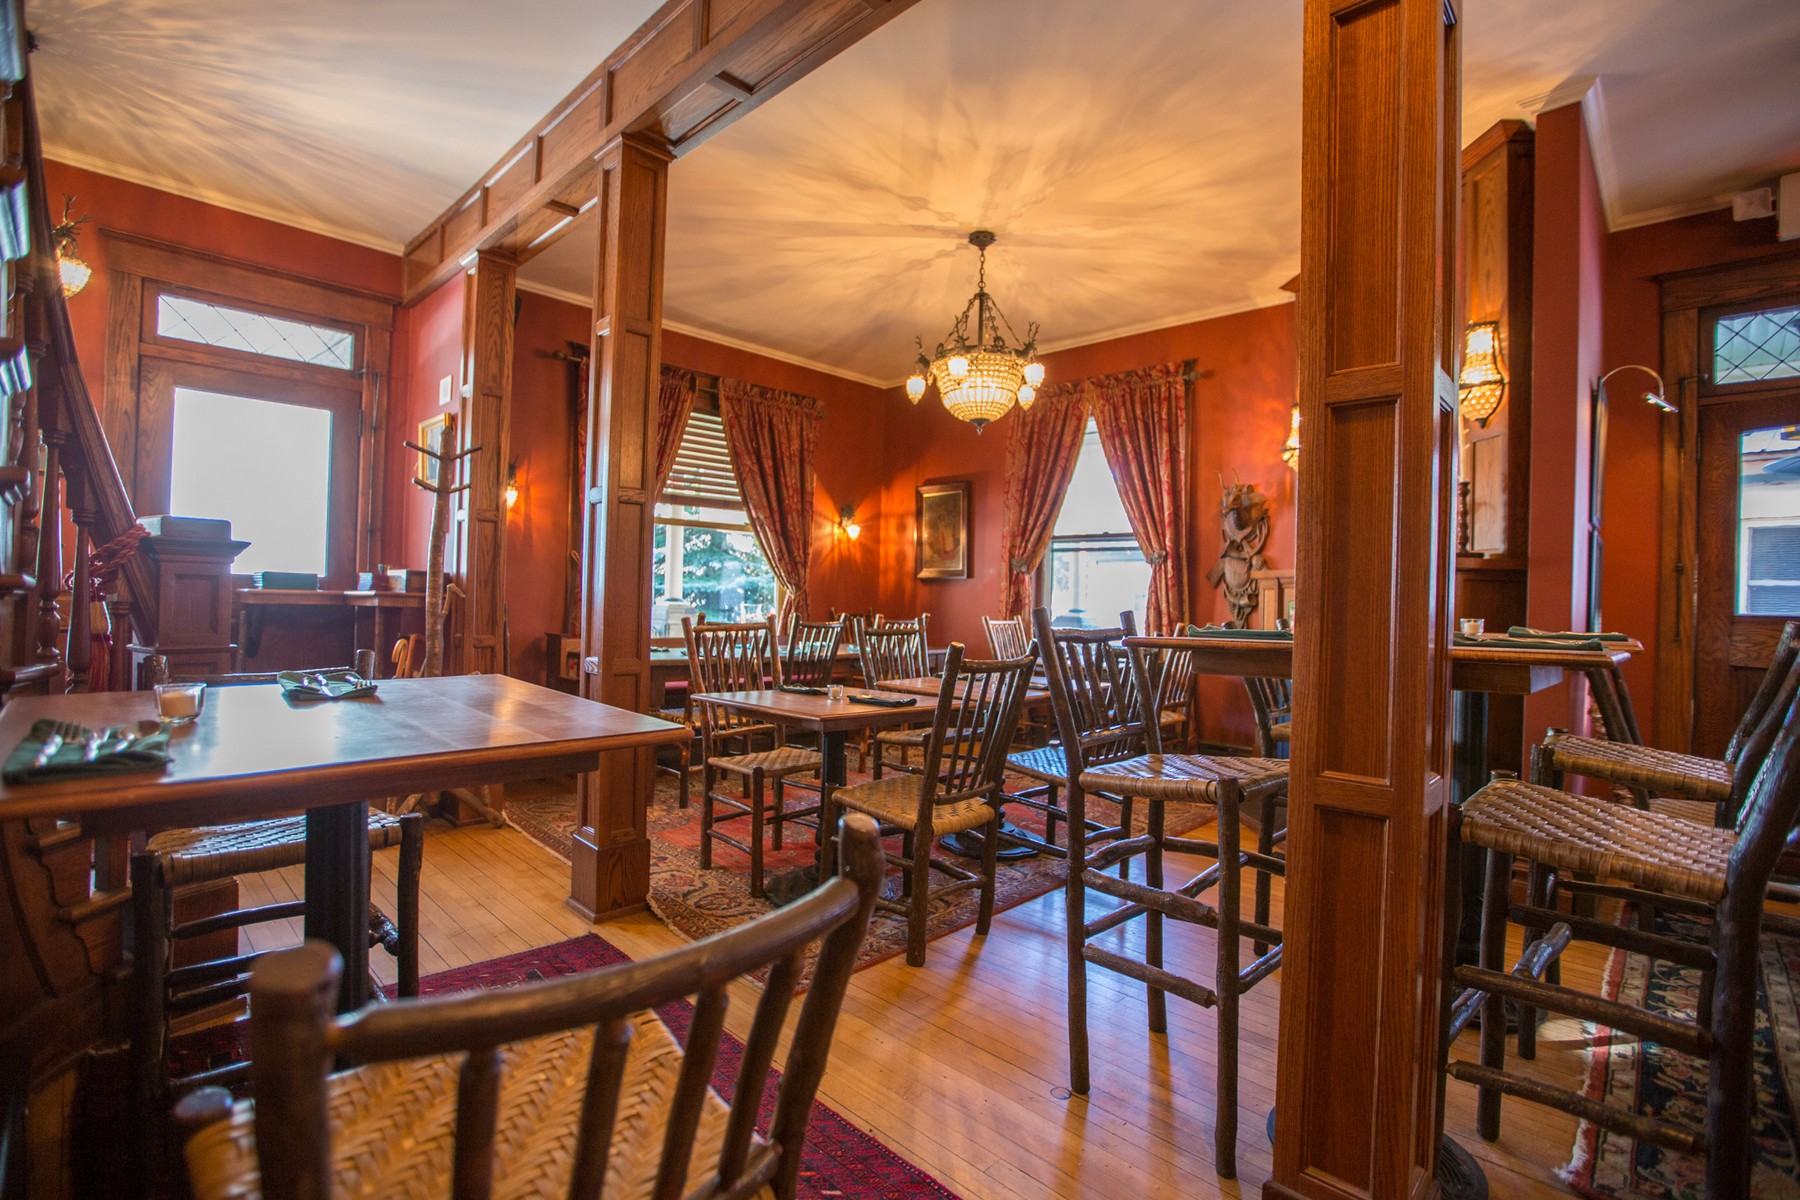 Additional photo for property listing at Gourmet Adirondack Restaurant 3046  New York 28 Old Forge, New York 13420 United States